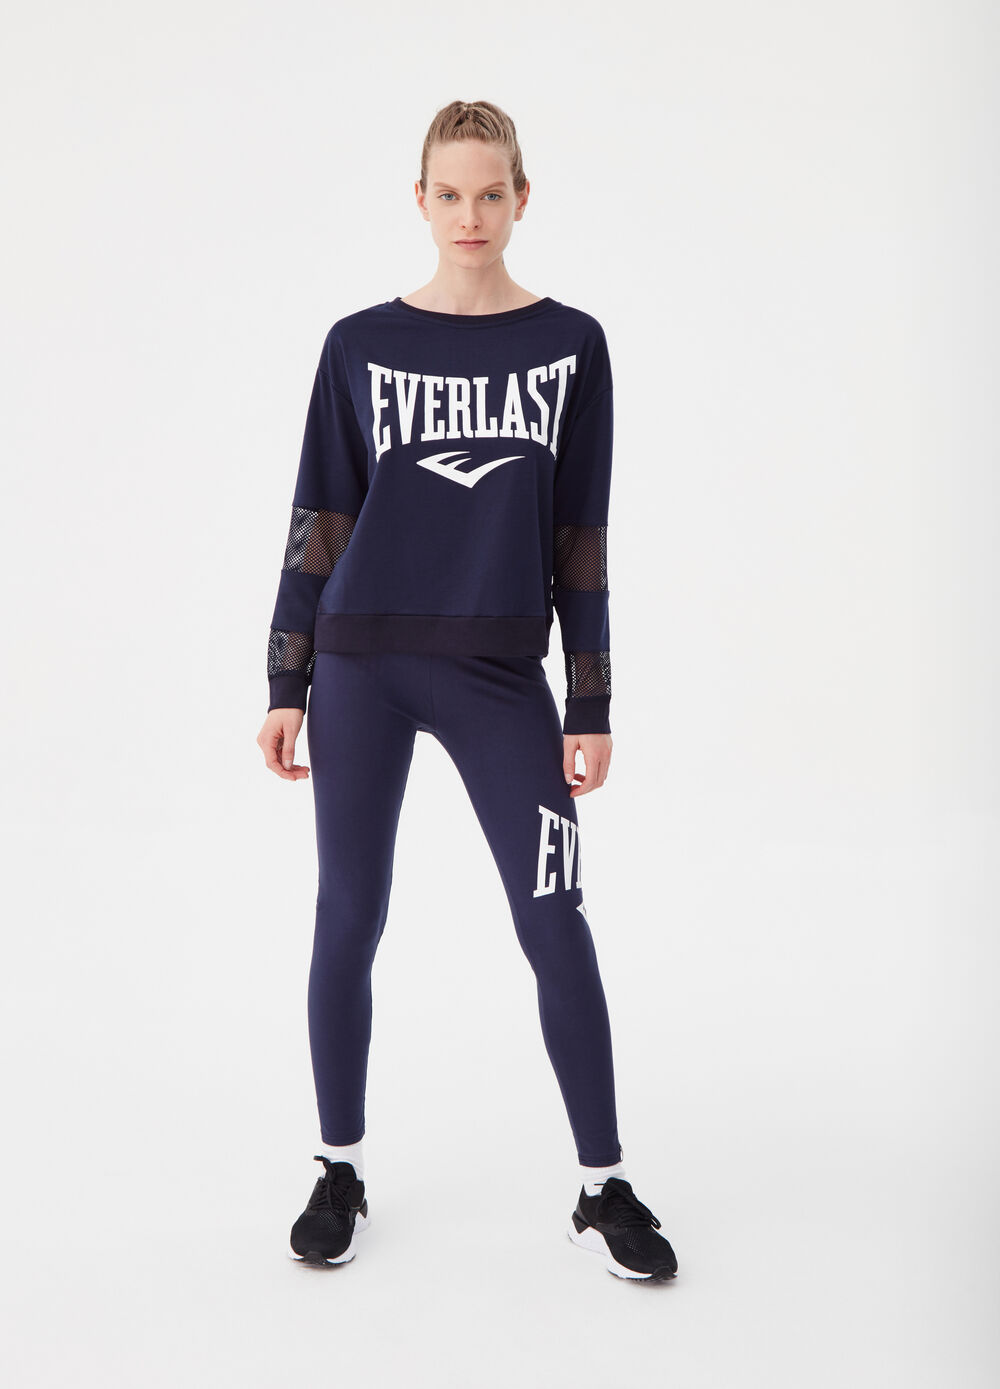 Everlast stretch leggings